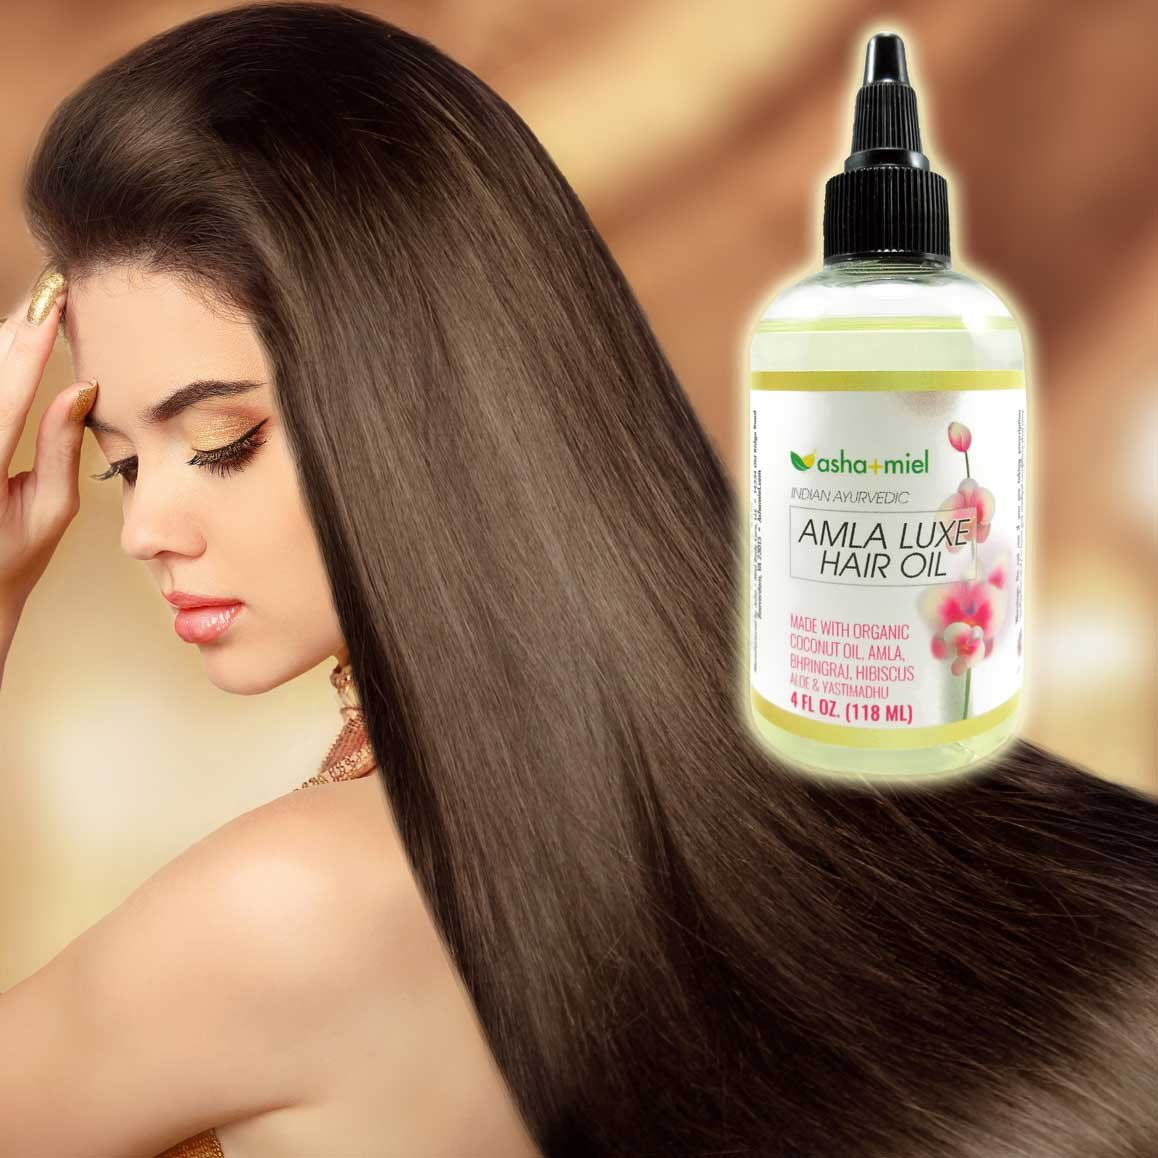 Amla Luxe: Amla, Bhringraj, Hibiscus, Aloe & Licorice Coconut oil, Indian Hair Oil for hair growth